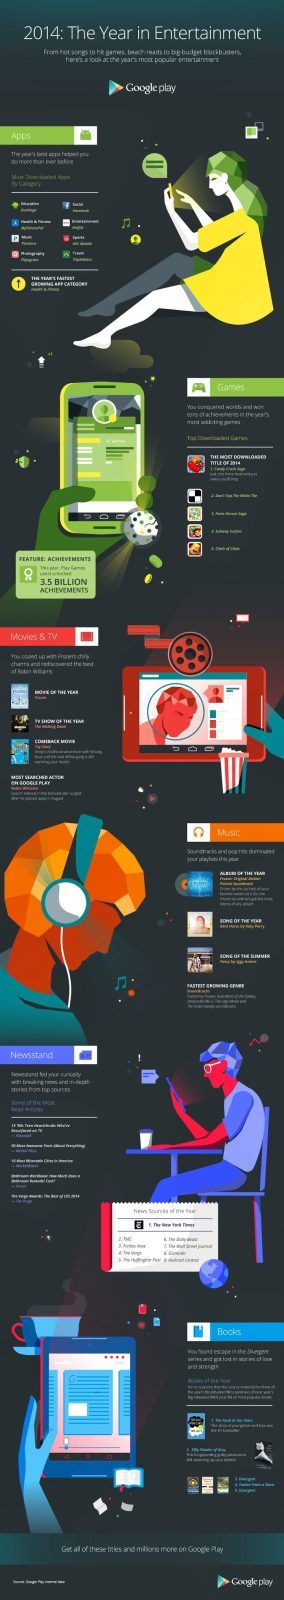 Google-Play-End-of-Year-Infographic-2014-FINAL